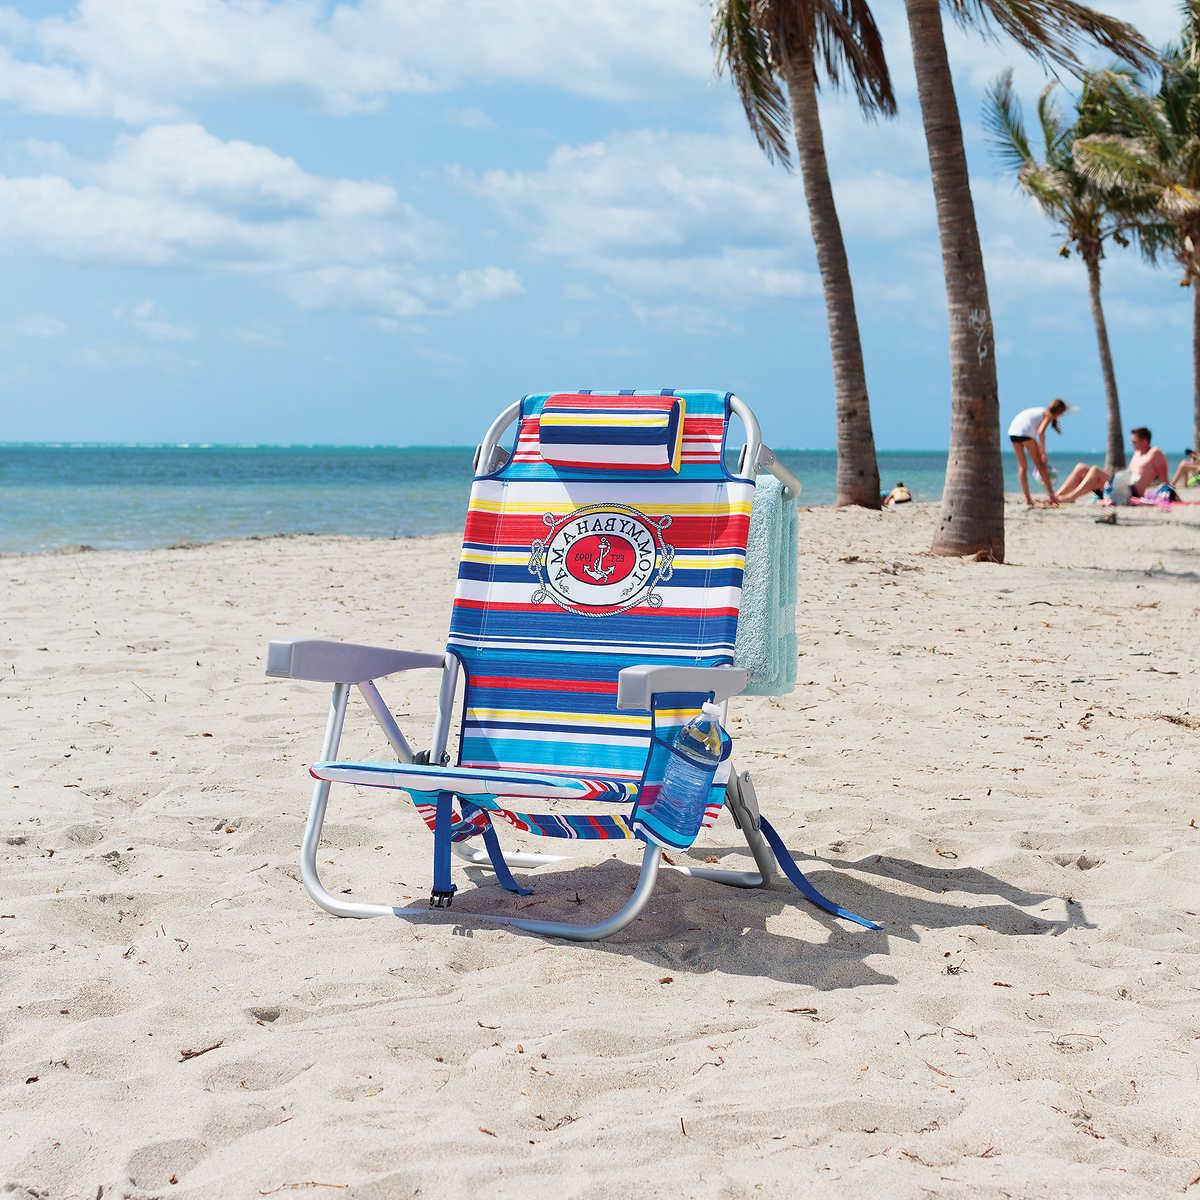 Tommy Bahama Backpack Beach Chair, Multi 5 Positions Capacit